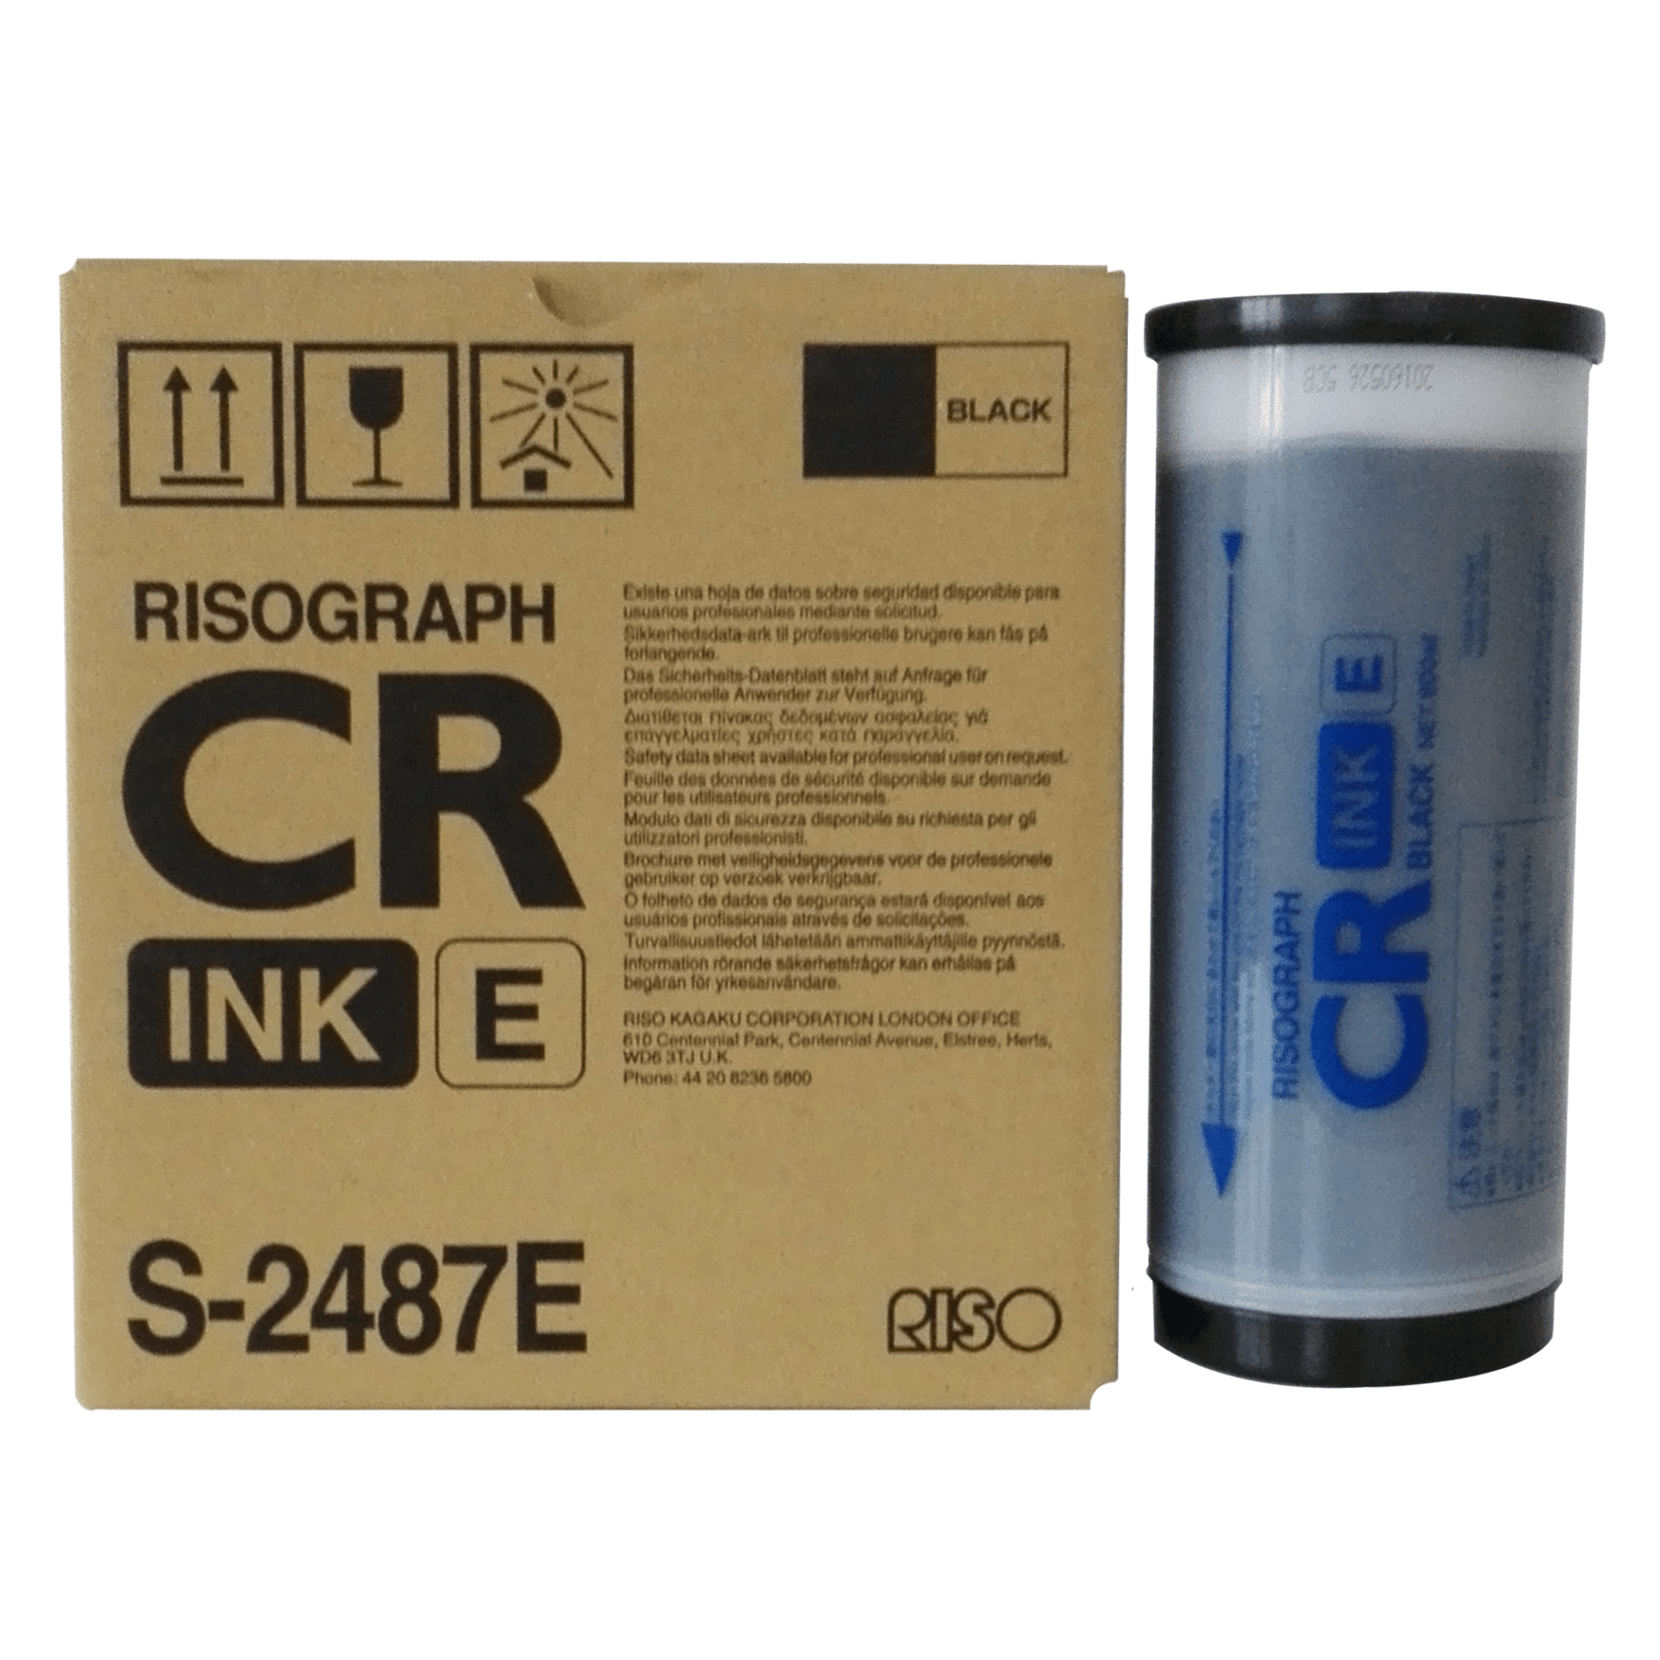 Risograph CR - Ink E - S-2487E